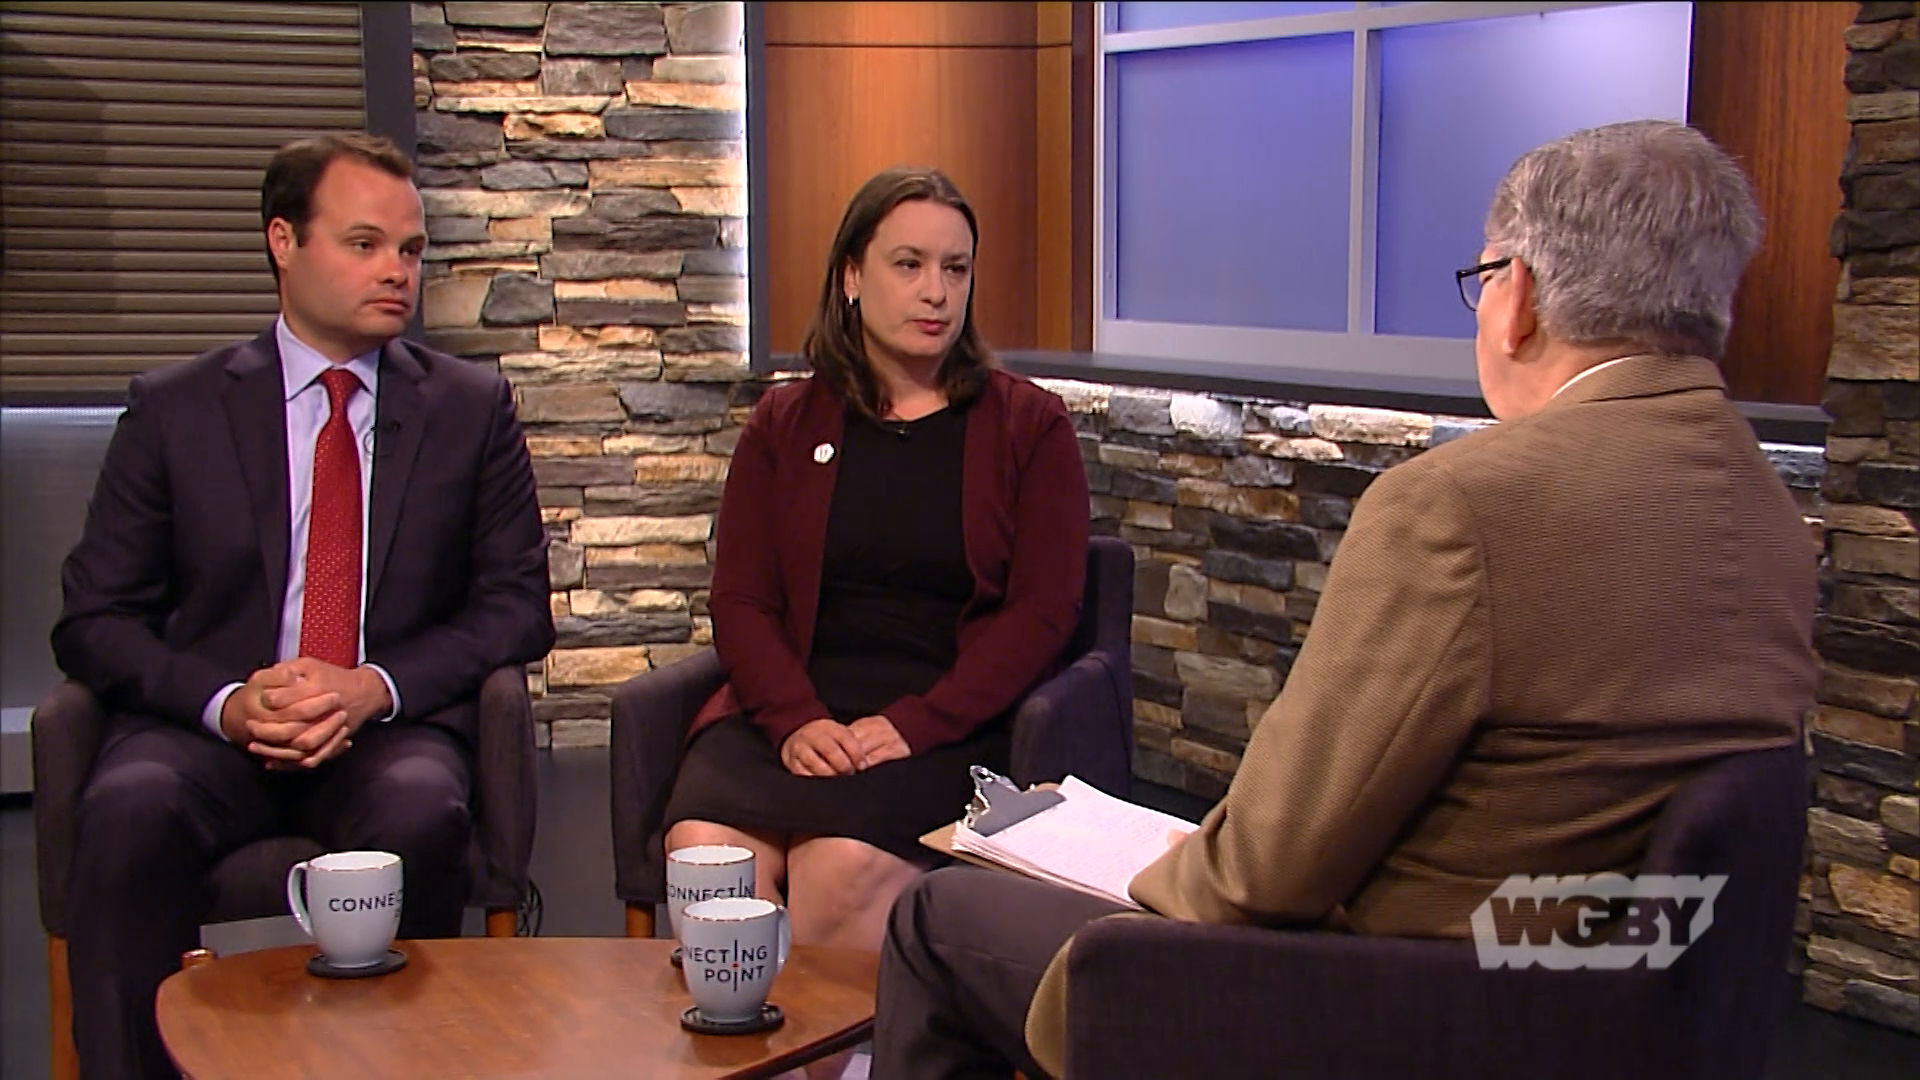 Sen. Eric Lesser & Rep. Lindsay Sabadosa share details about proposed hands-free cell phone legislation banning cellphone use while driving in Mass.